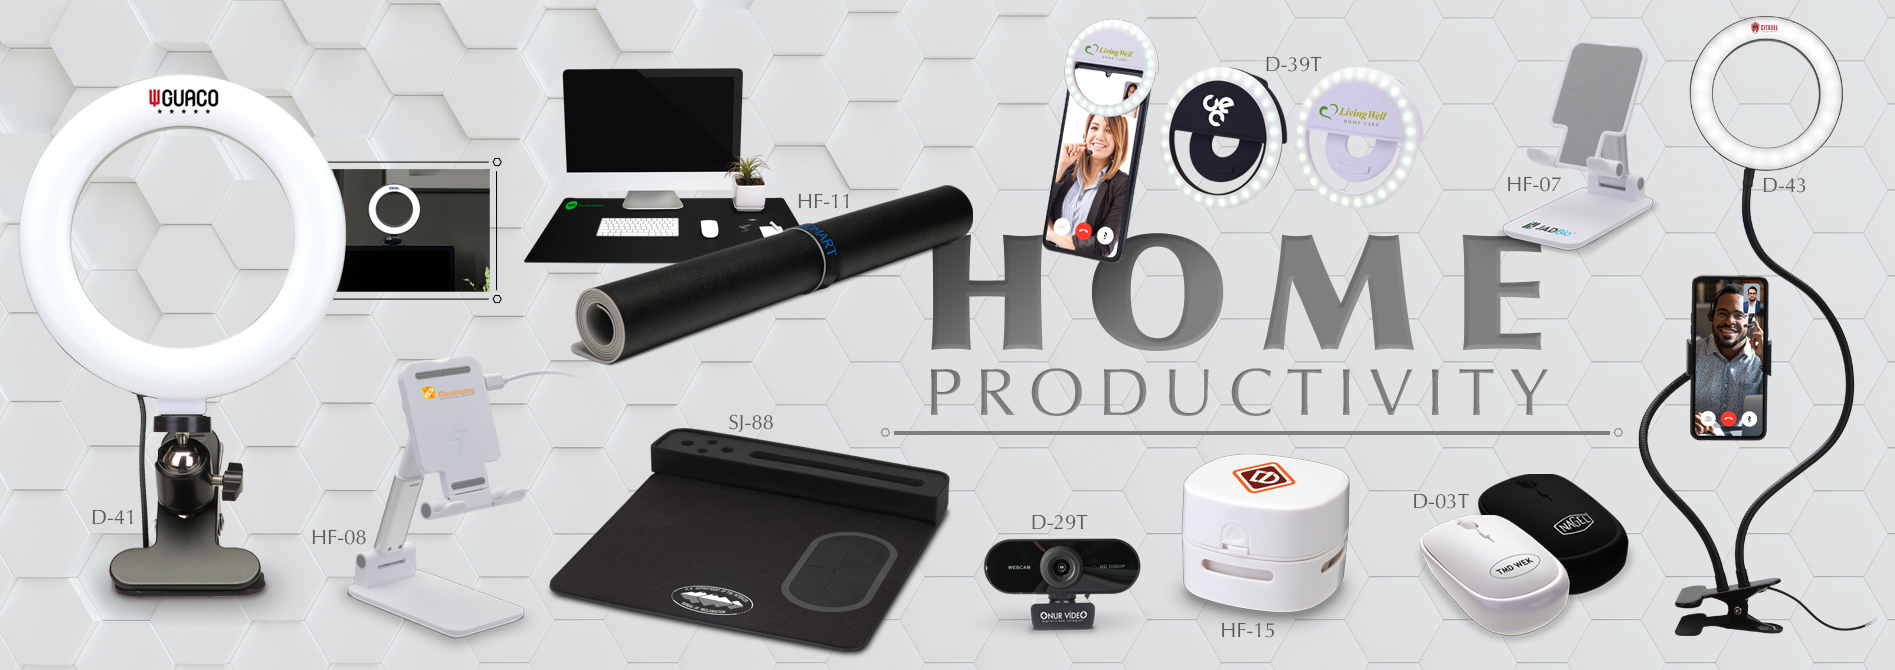 Home Productivity NEW Products